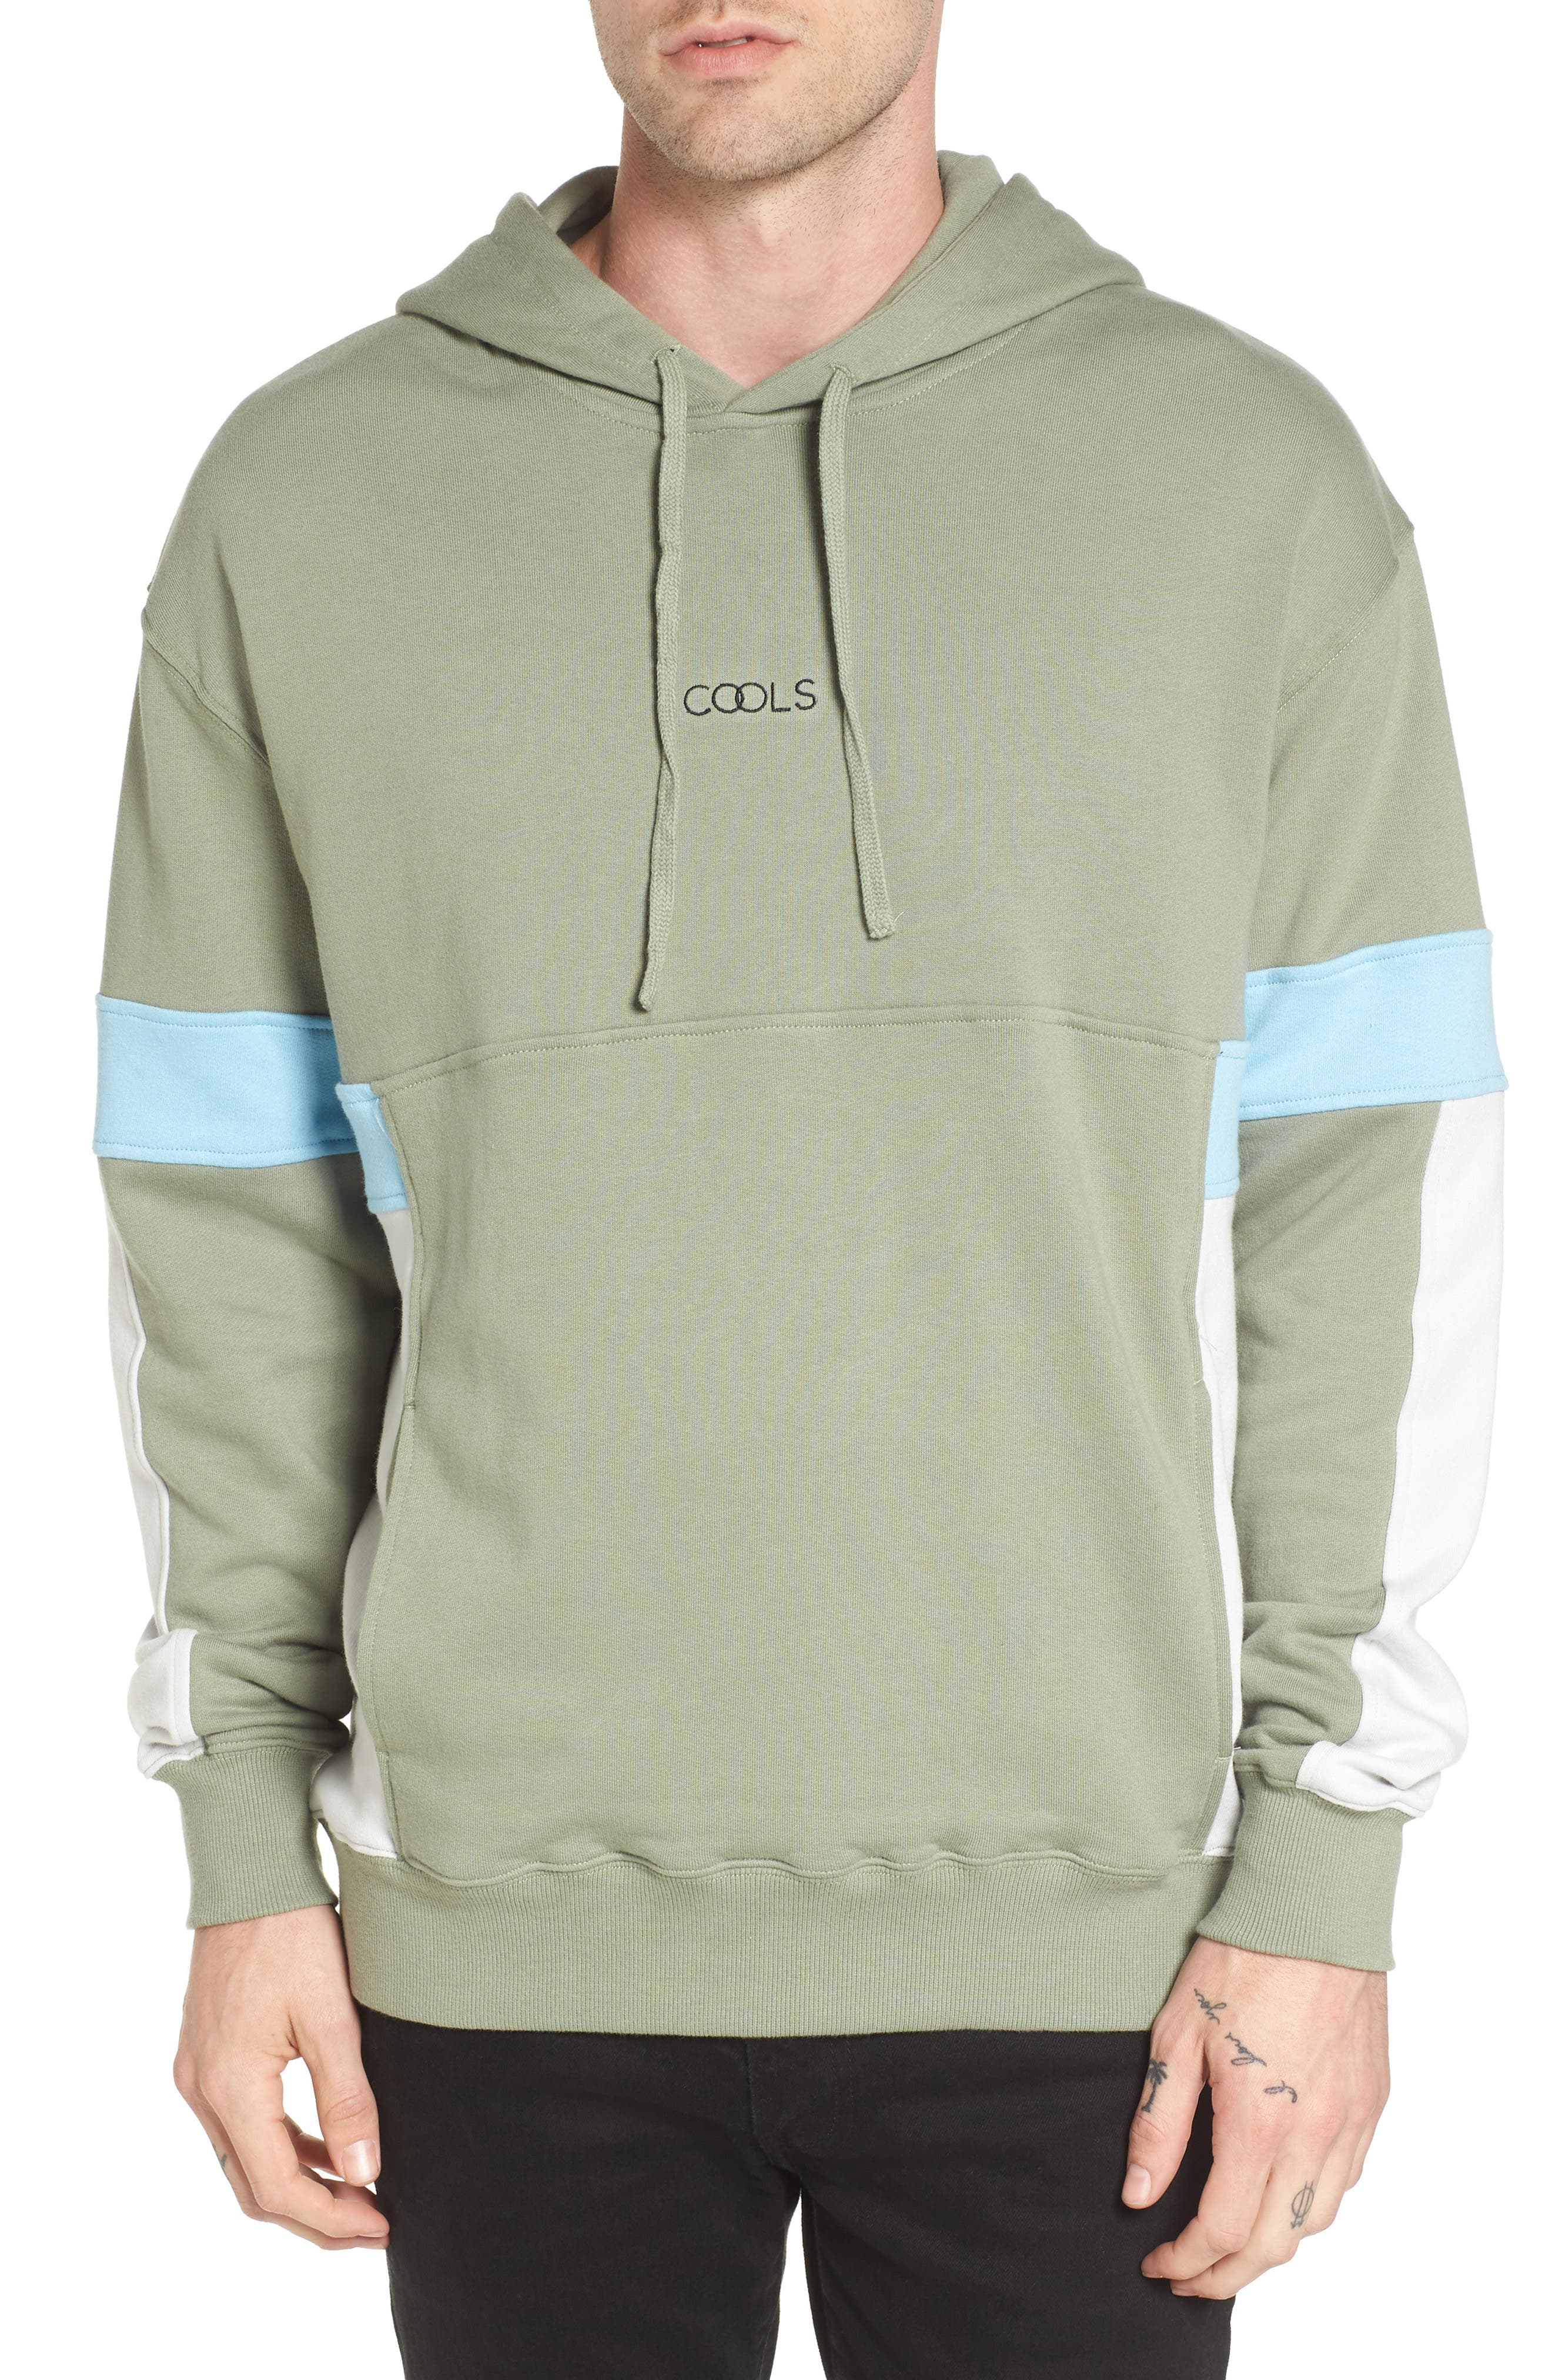 Barney Cools Sports Hoodie